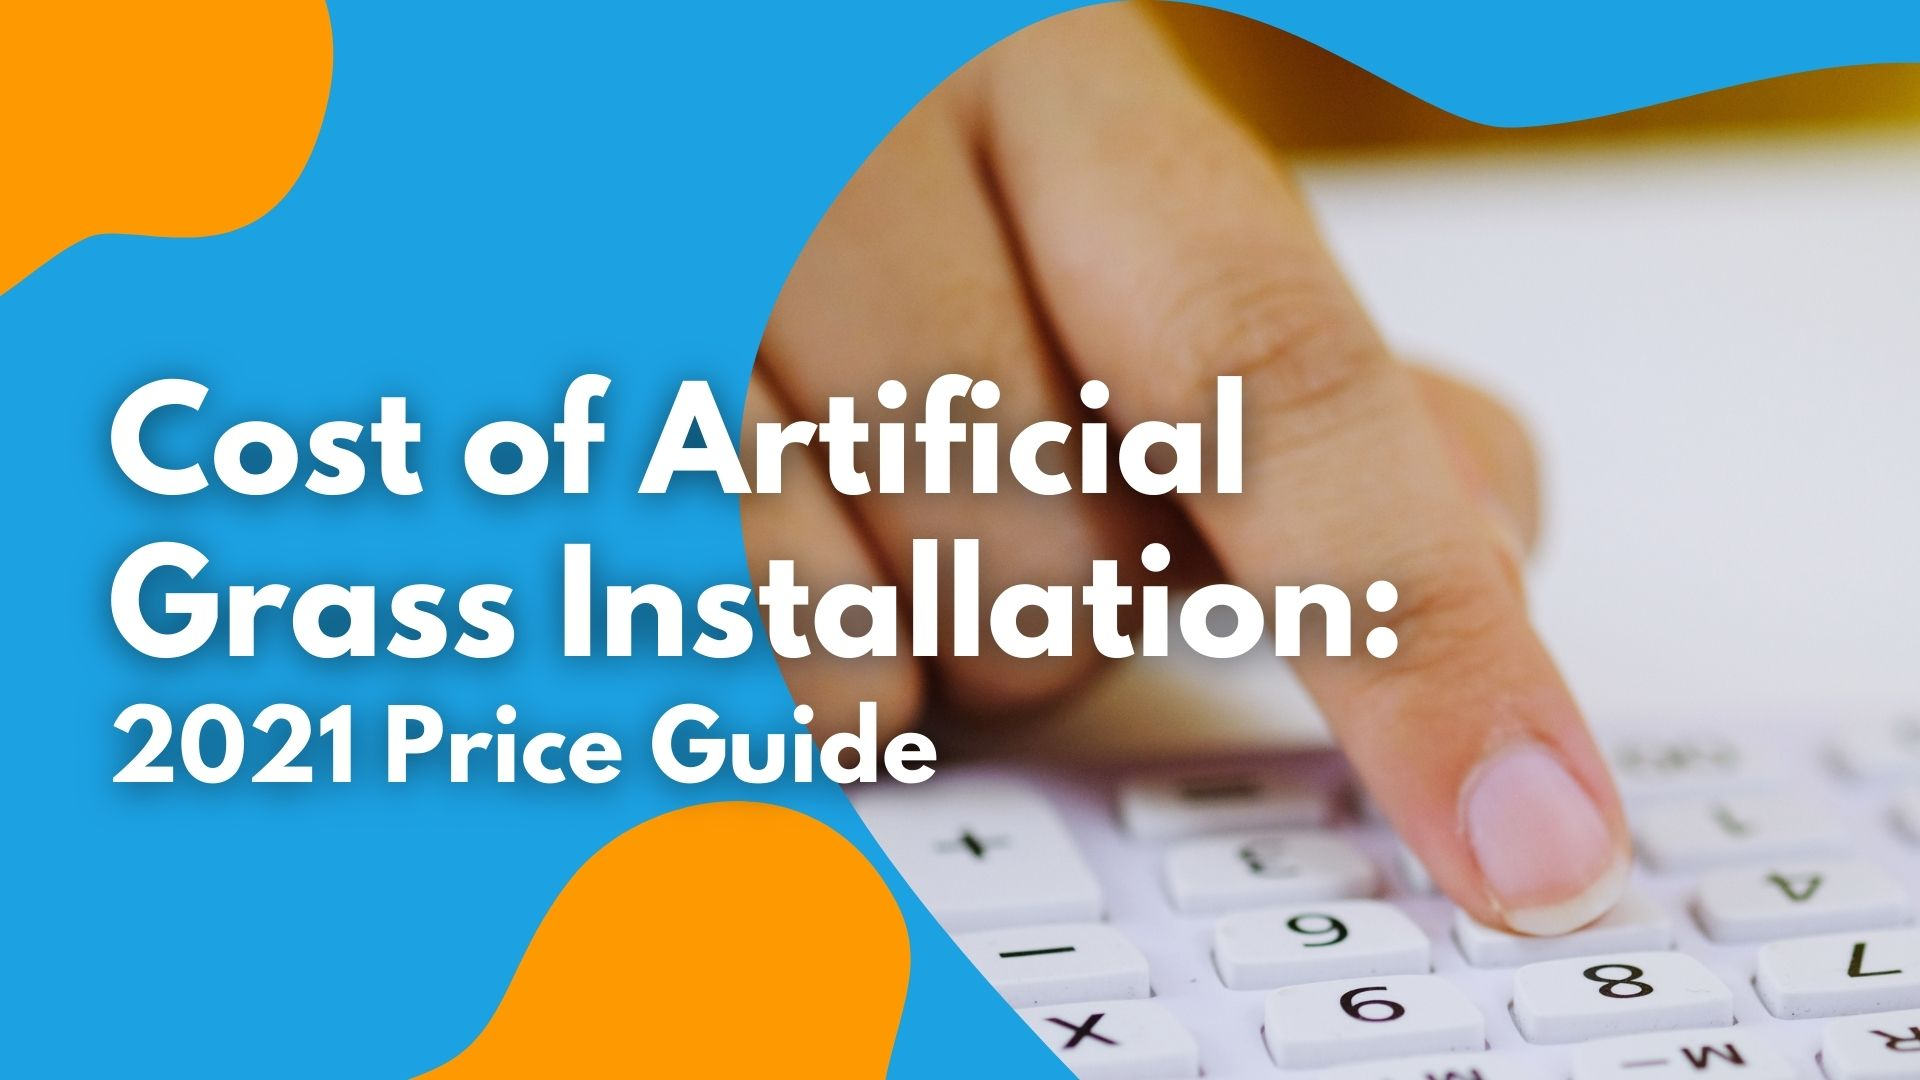 Cost of Artificial Grass Installation: 2021 Price Guide